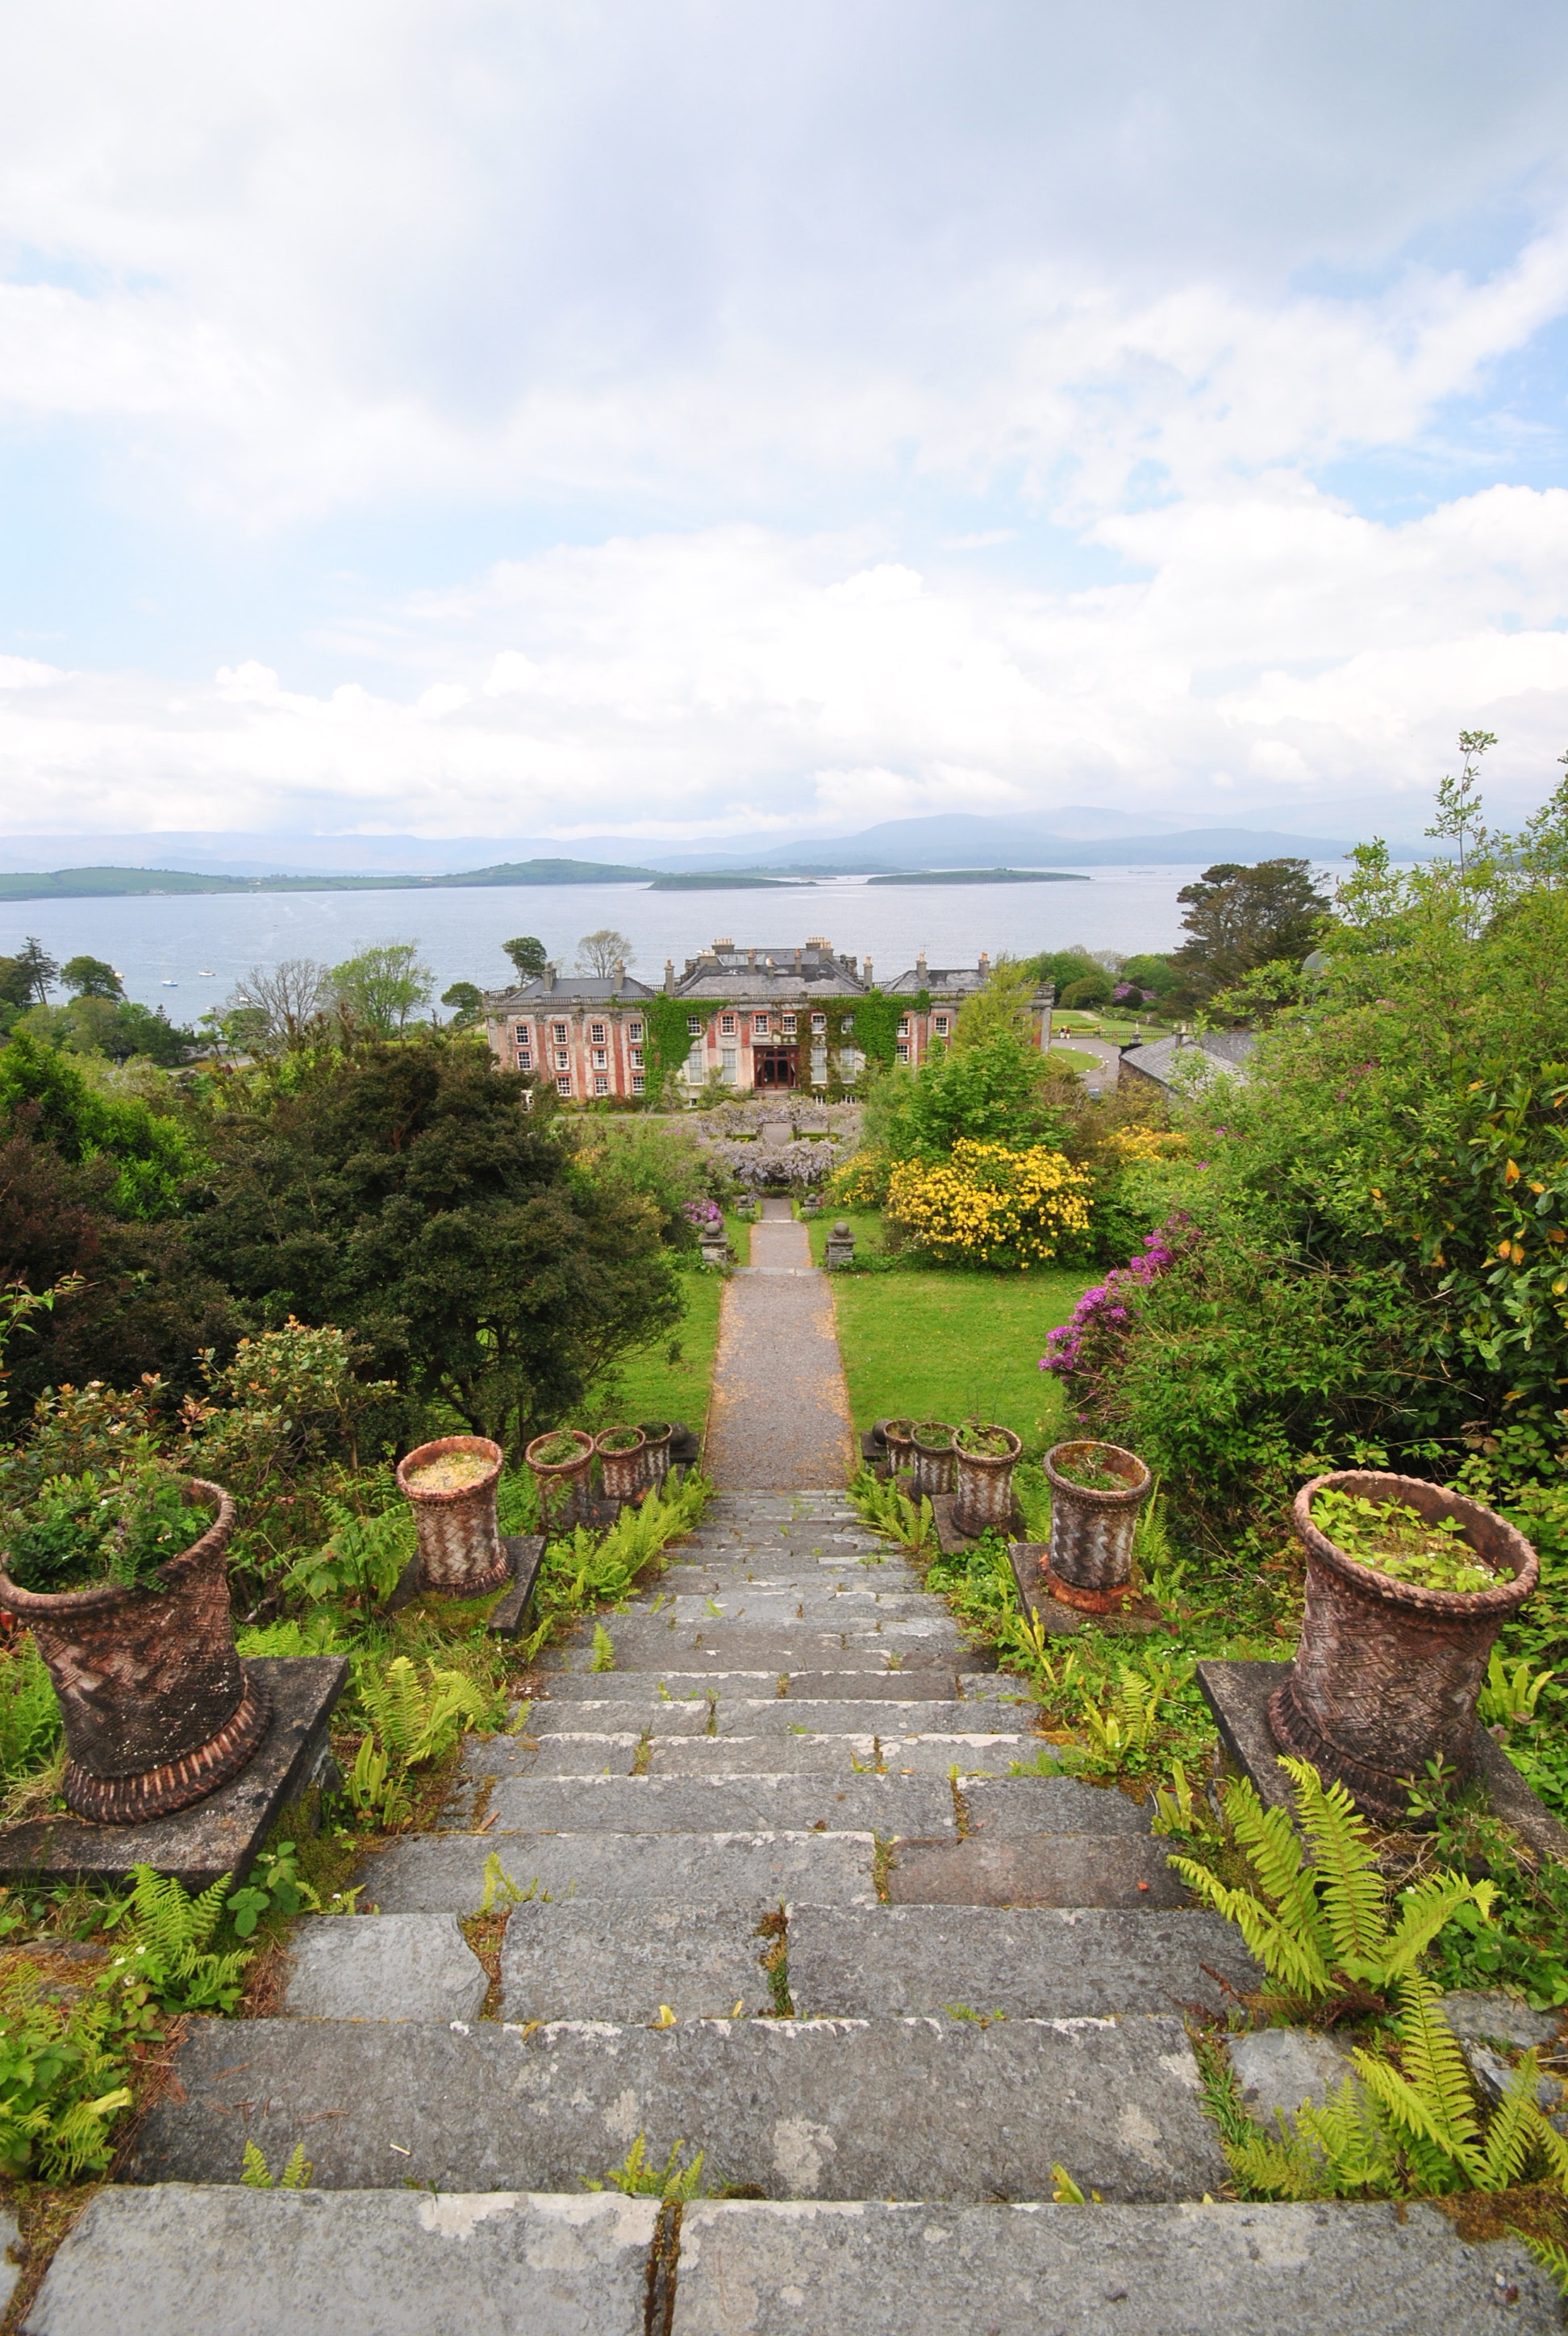 At the top of 100+ steps at Bantry House & Gardenhttp://www.bantryhouse.com/bantryhouse/